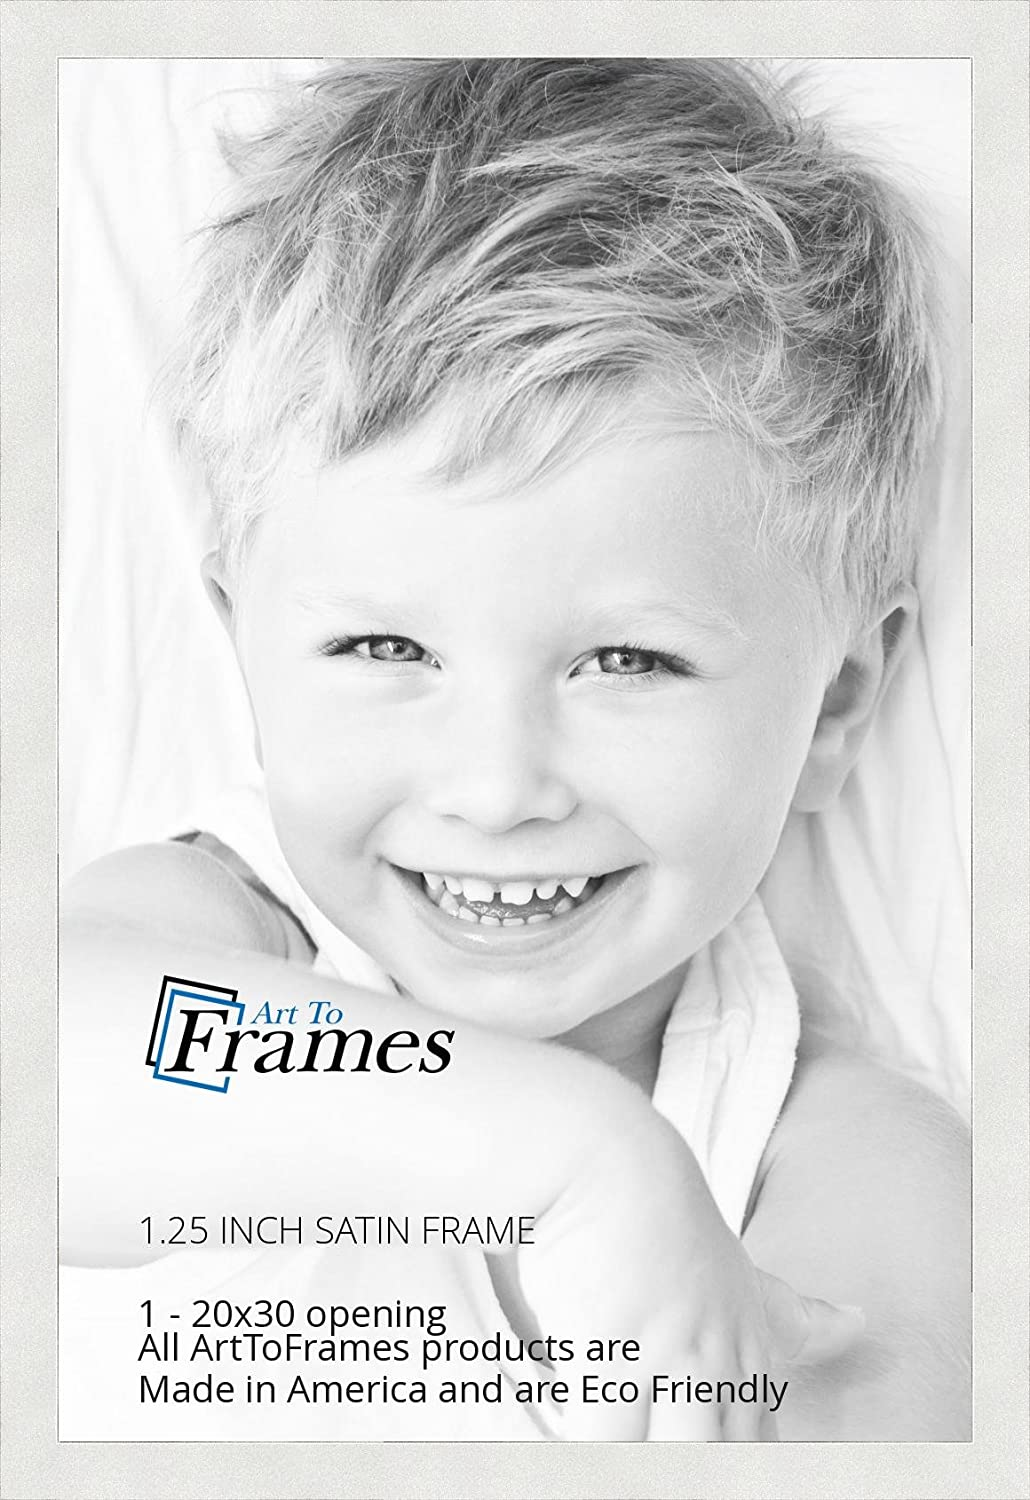 Amazon.com - ArtToFrames 20x30 inch Satin White Frame Picture Frame ...